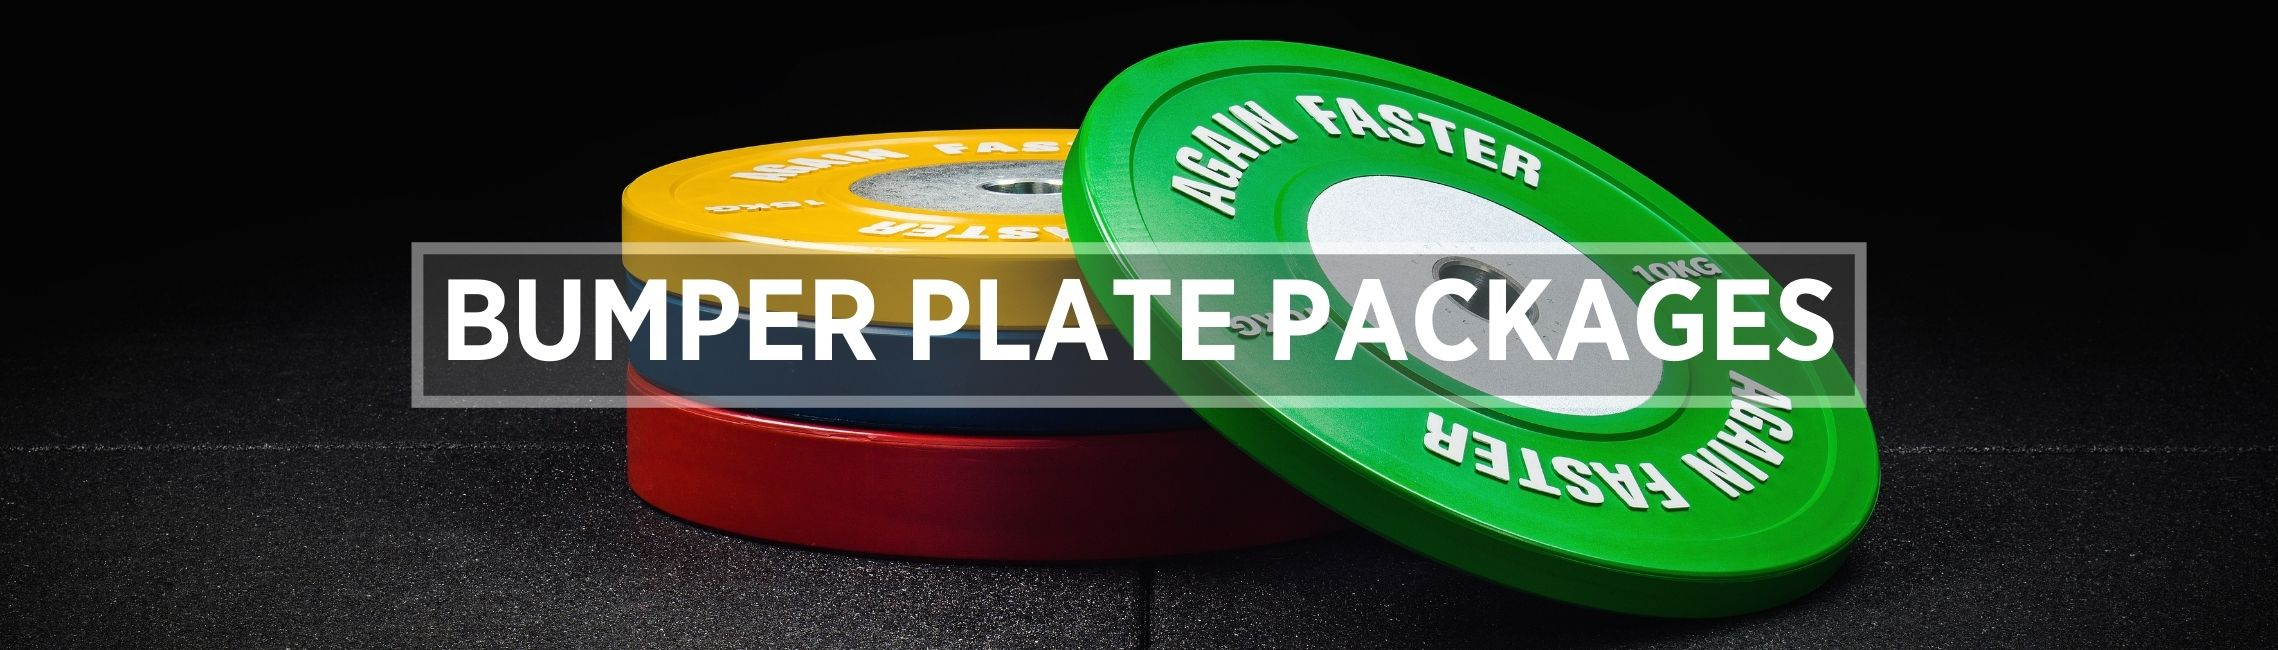 Bumper Plate Packages